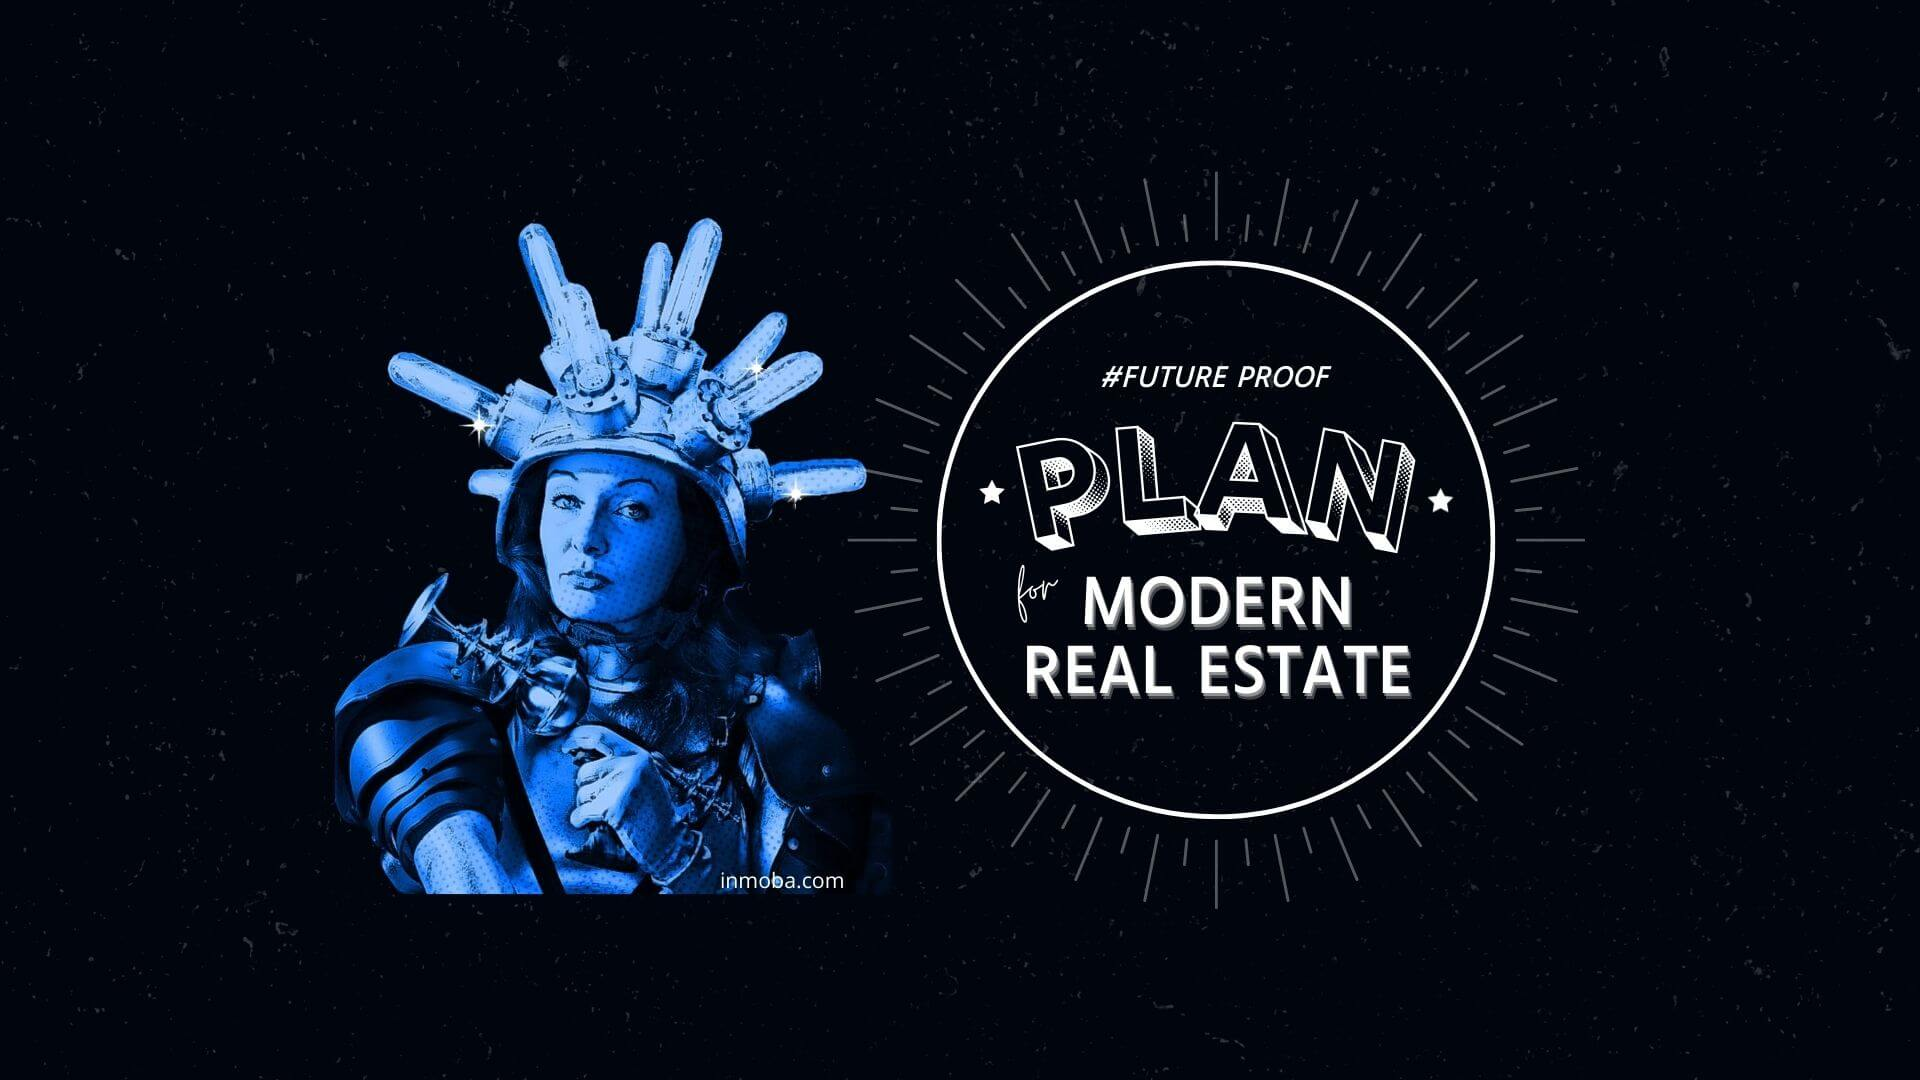 A future plan for a modern Real Estate